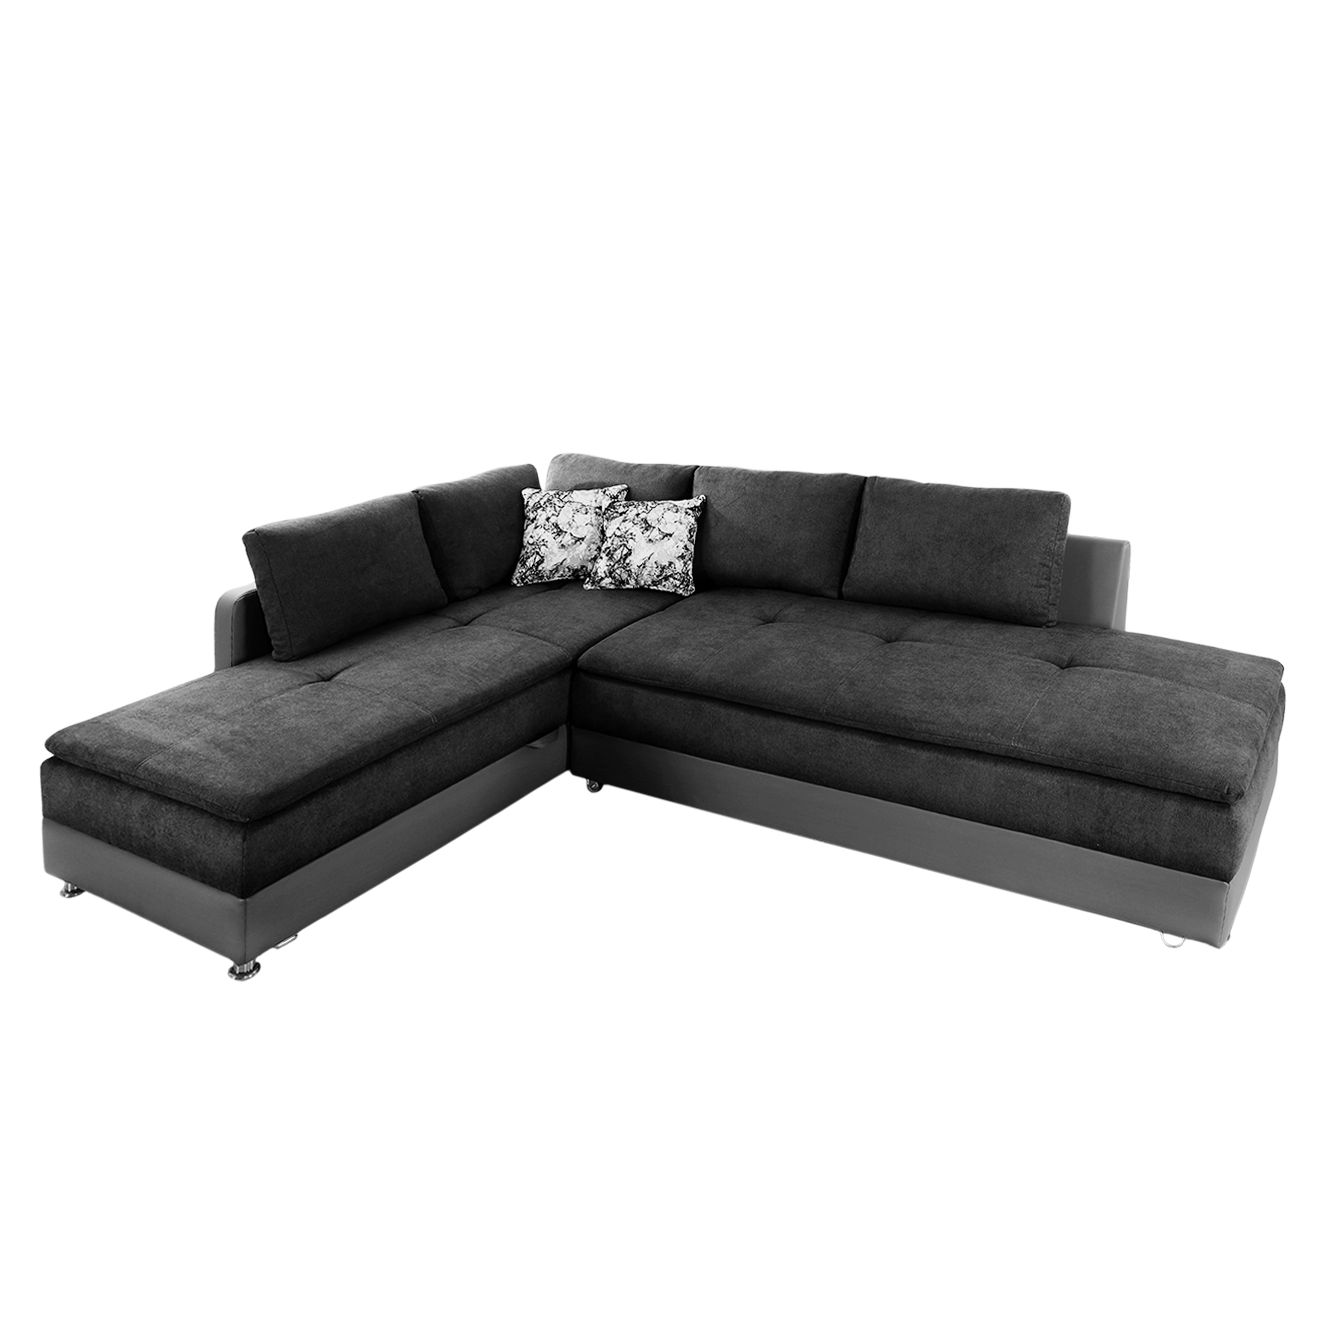 ecksofa latur mit schlaffunktion microfaser kunstleder ottomane davorstehend links. Black Bedroom Furniture Sets. Home Design Ideas